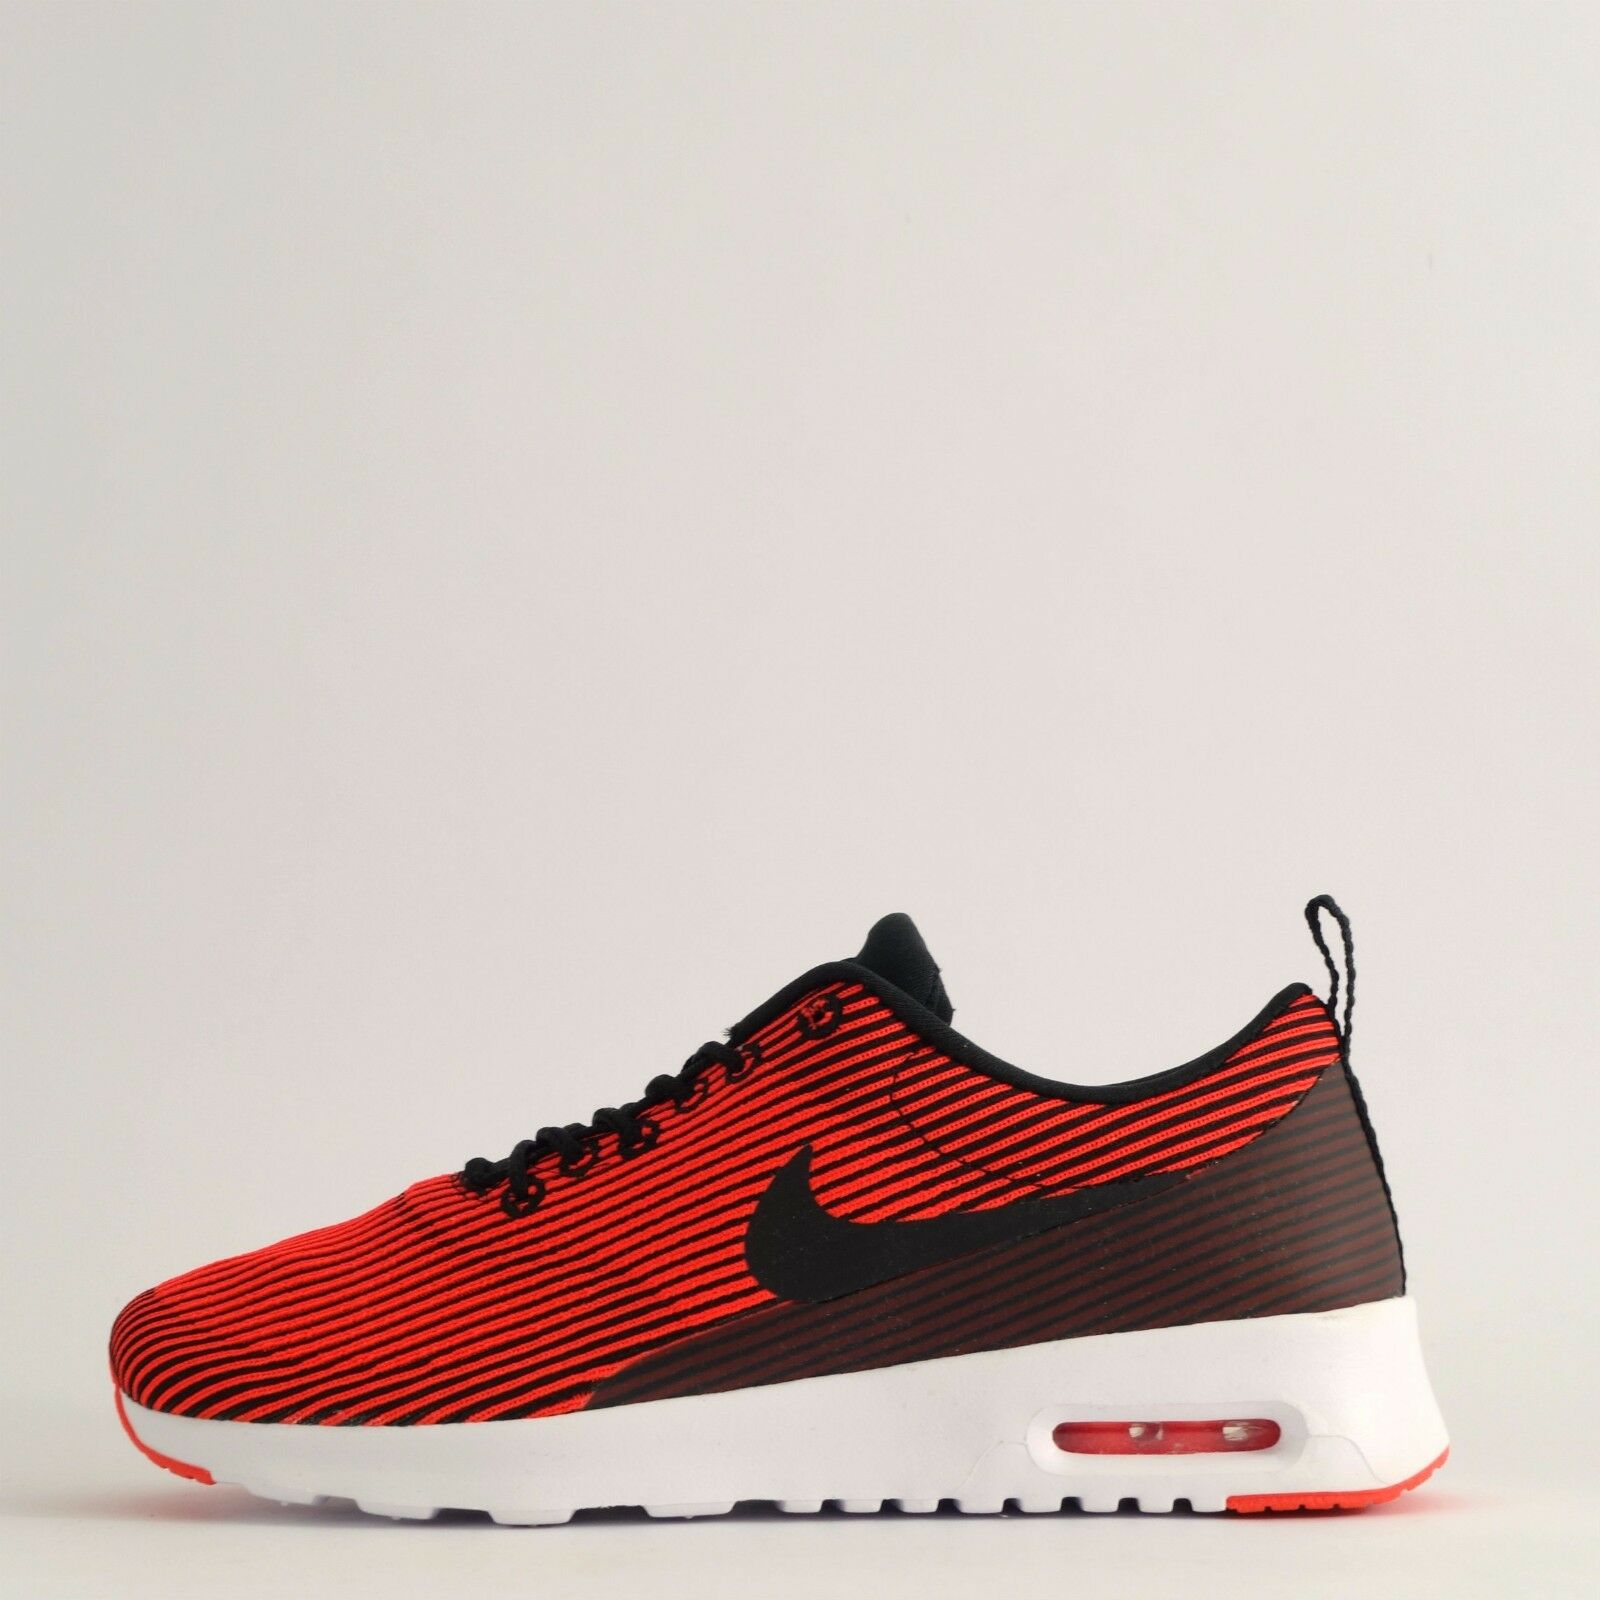 Nike Air Max Thea Jacquard Womens Trainers shoes Sneakers Black Bright Crimson